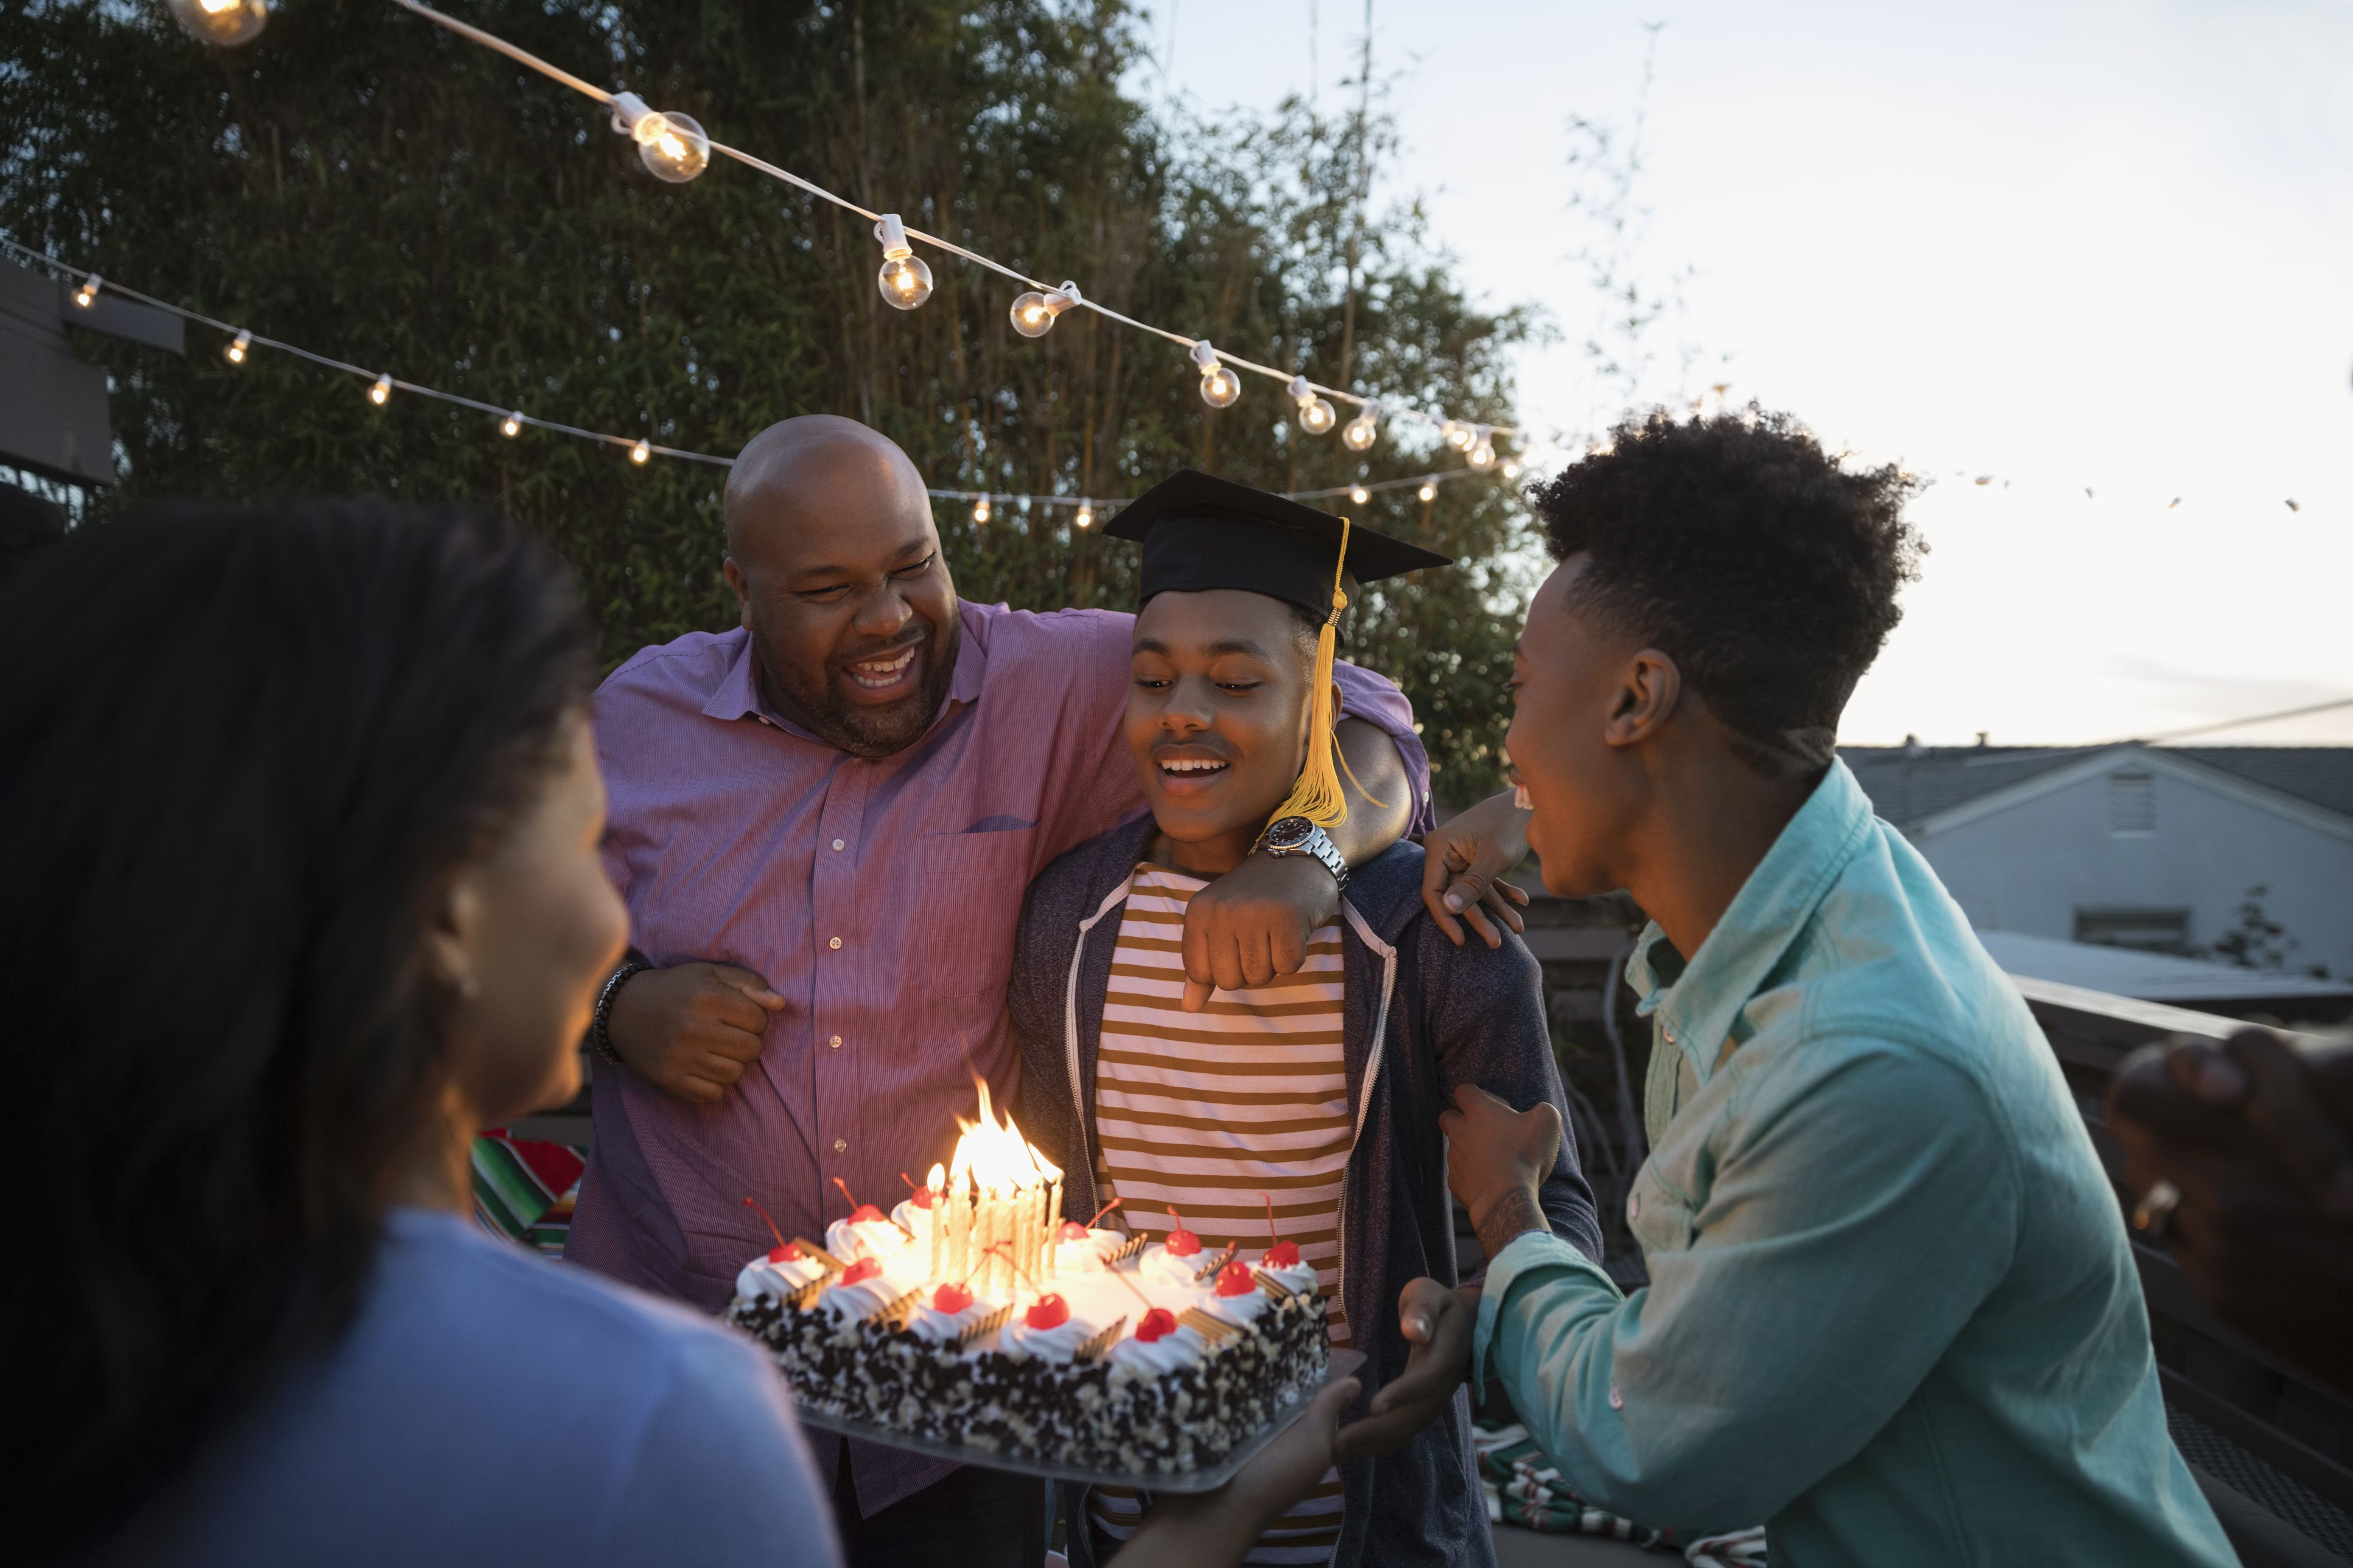 Party Planner And Ideas For A High School Graduation